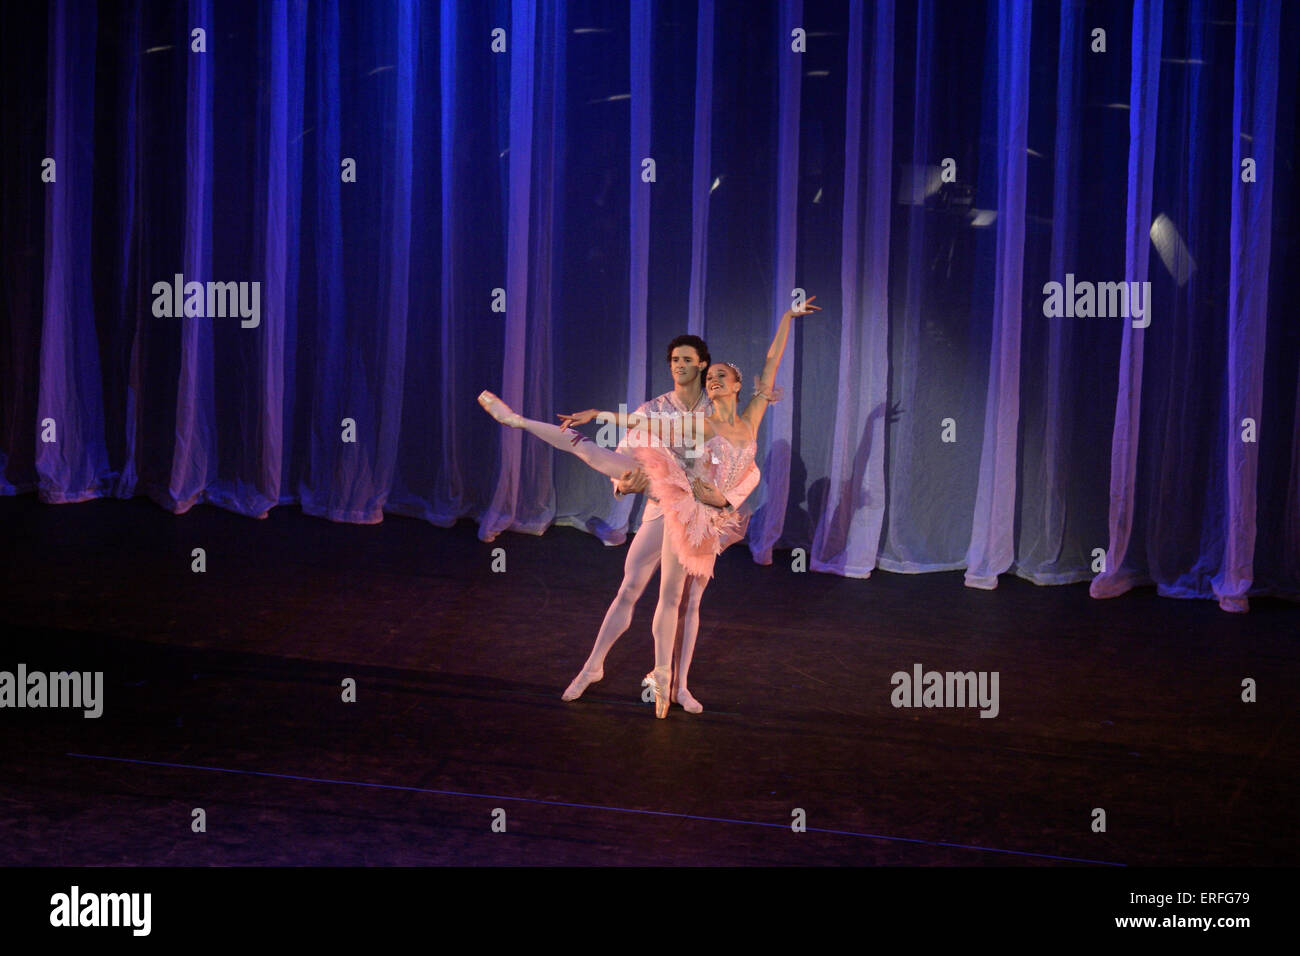 Ballet dancers dancing against backdrop of curtains. from Birmingham Royal Ballet - Wales Millennium Centre opening - Stock Image